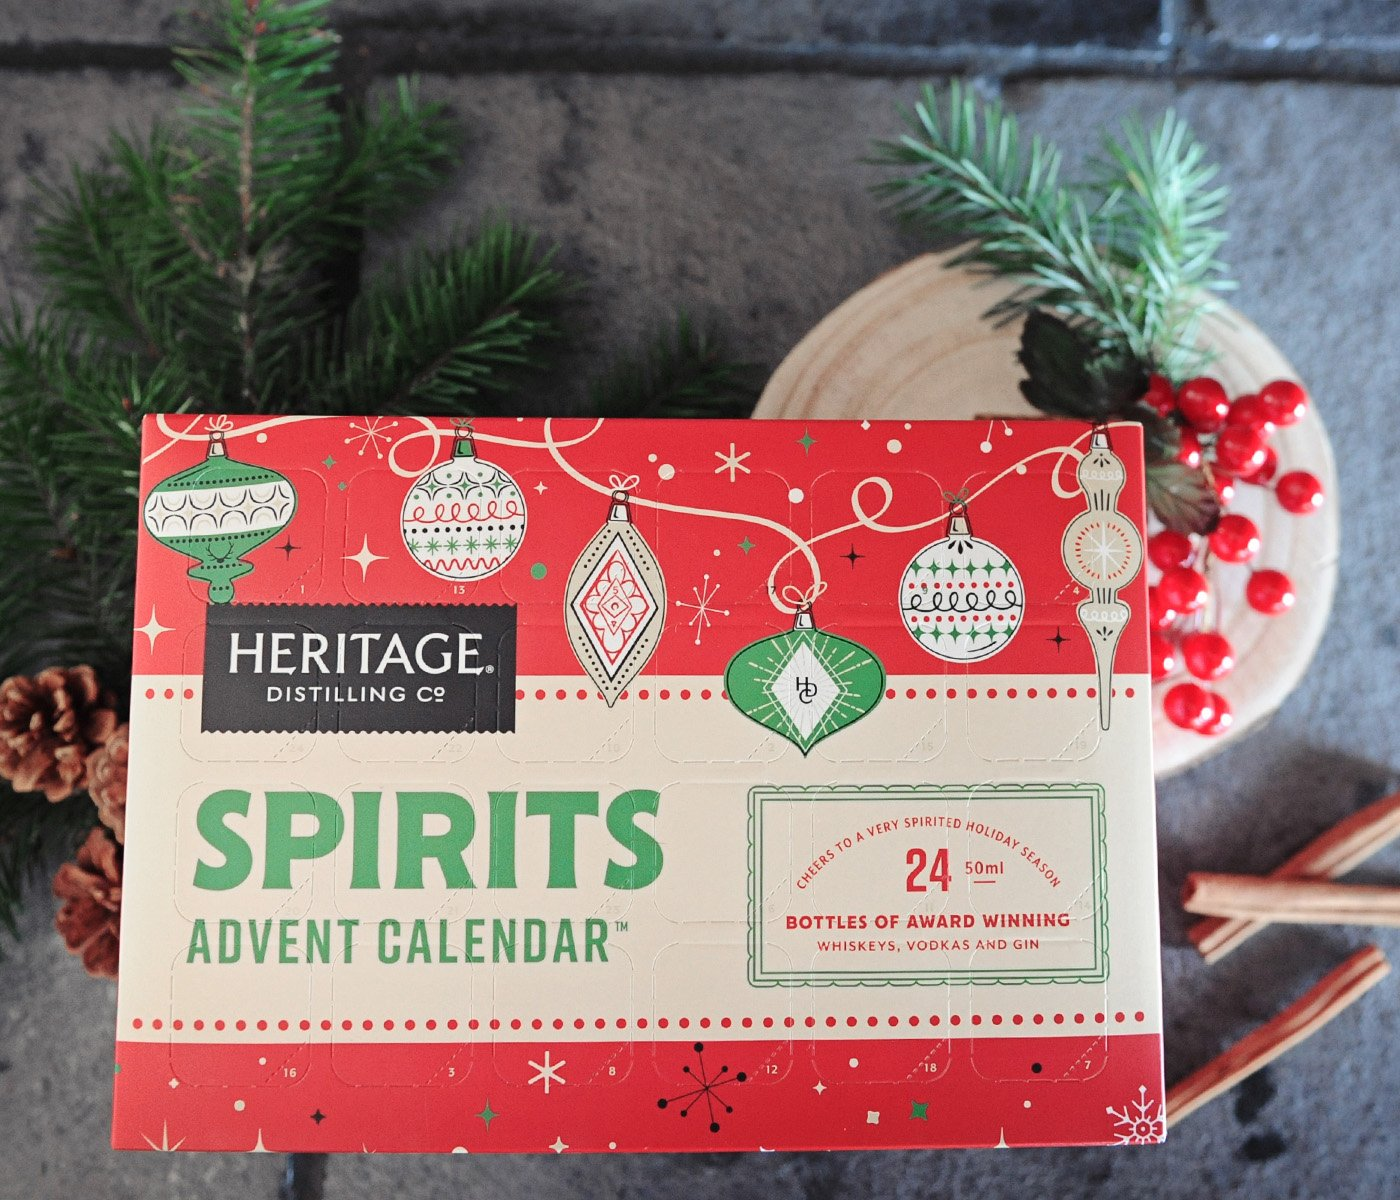 Spirits Advent Calendar